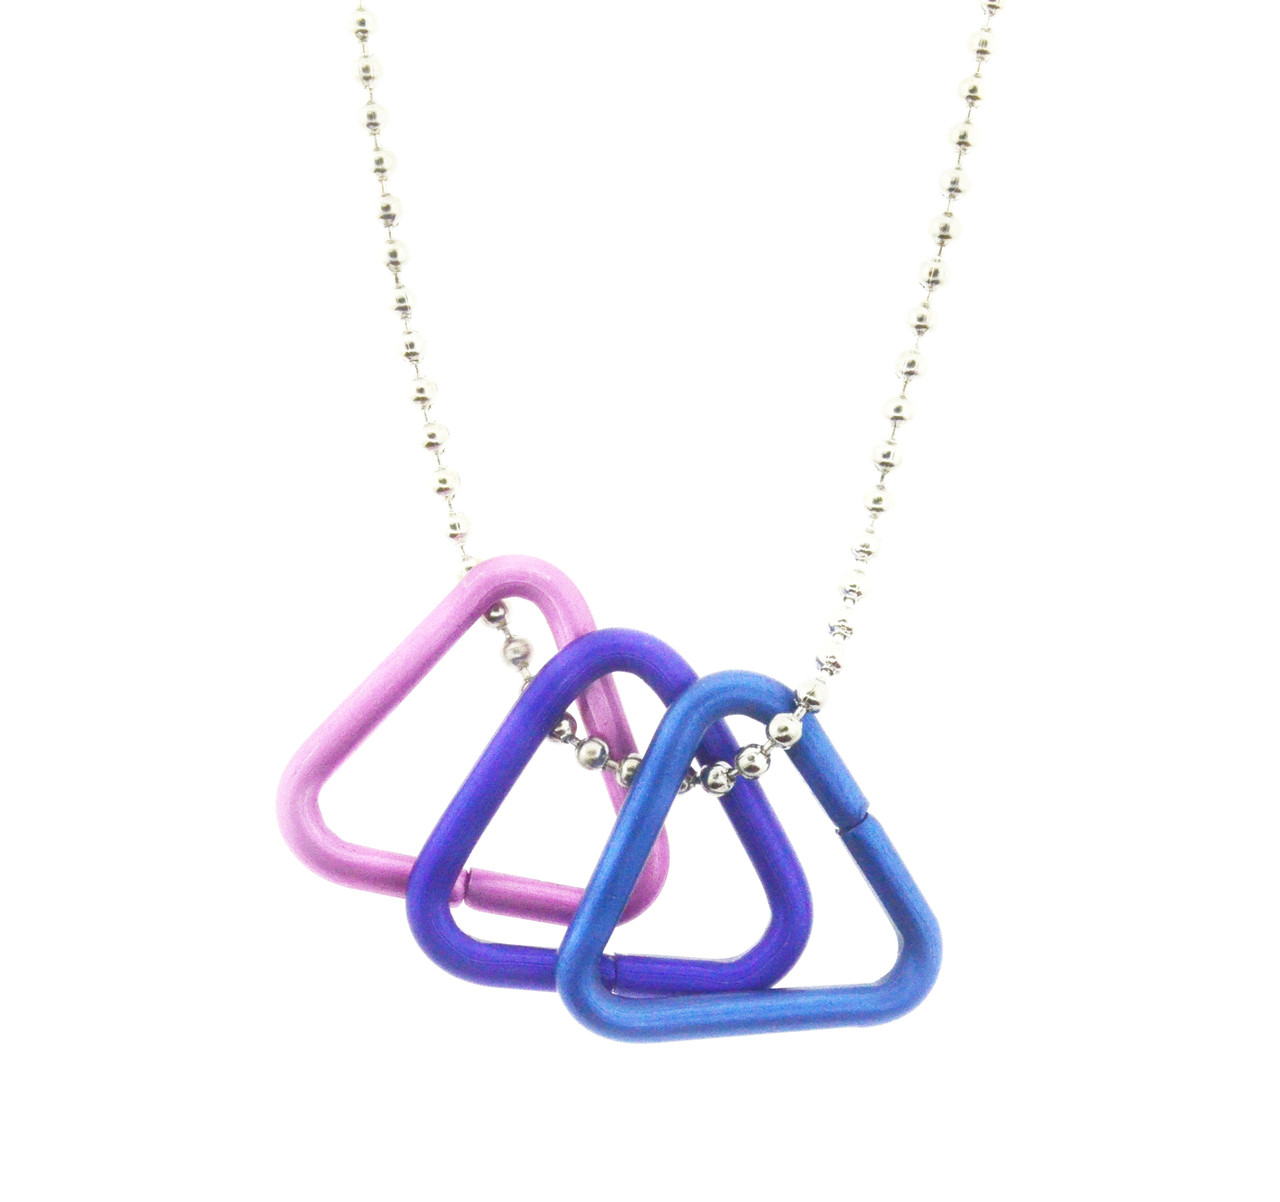 Bi Pride Freedom Triangle Necklace - Bisexual LGBT Pride Chain